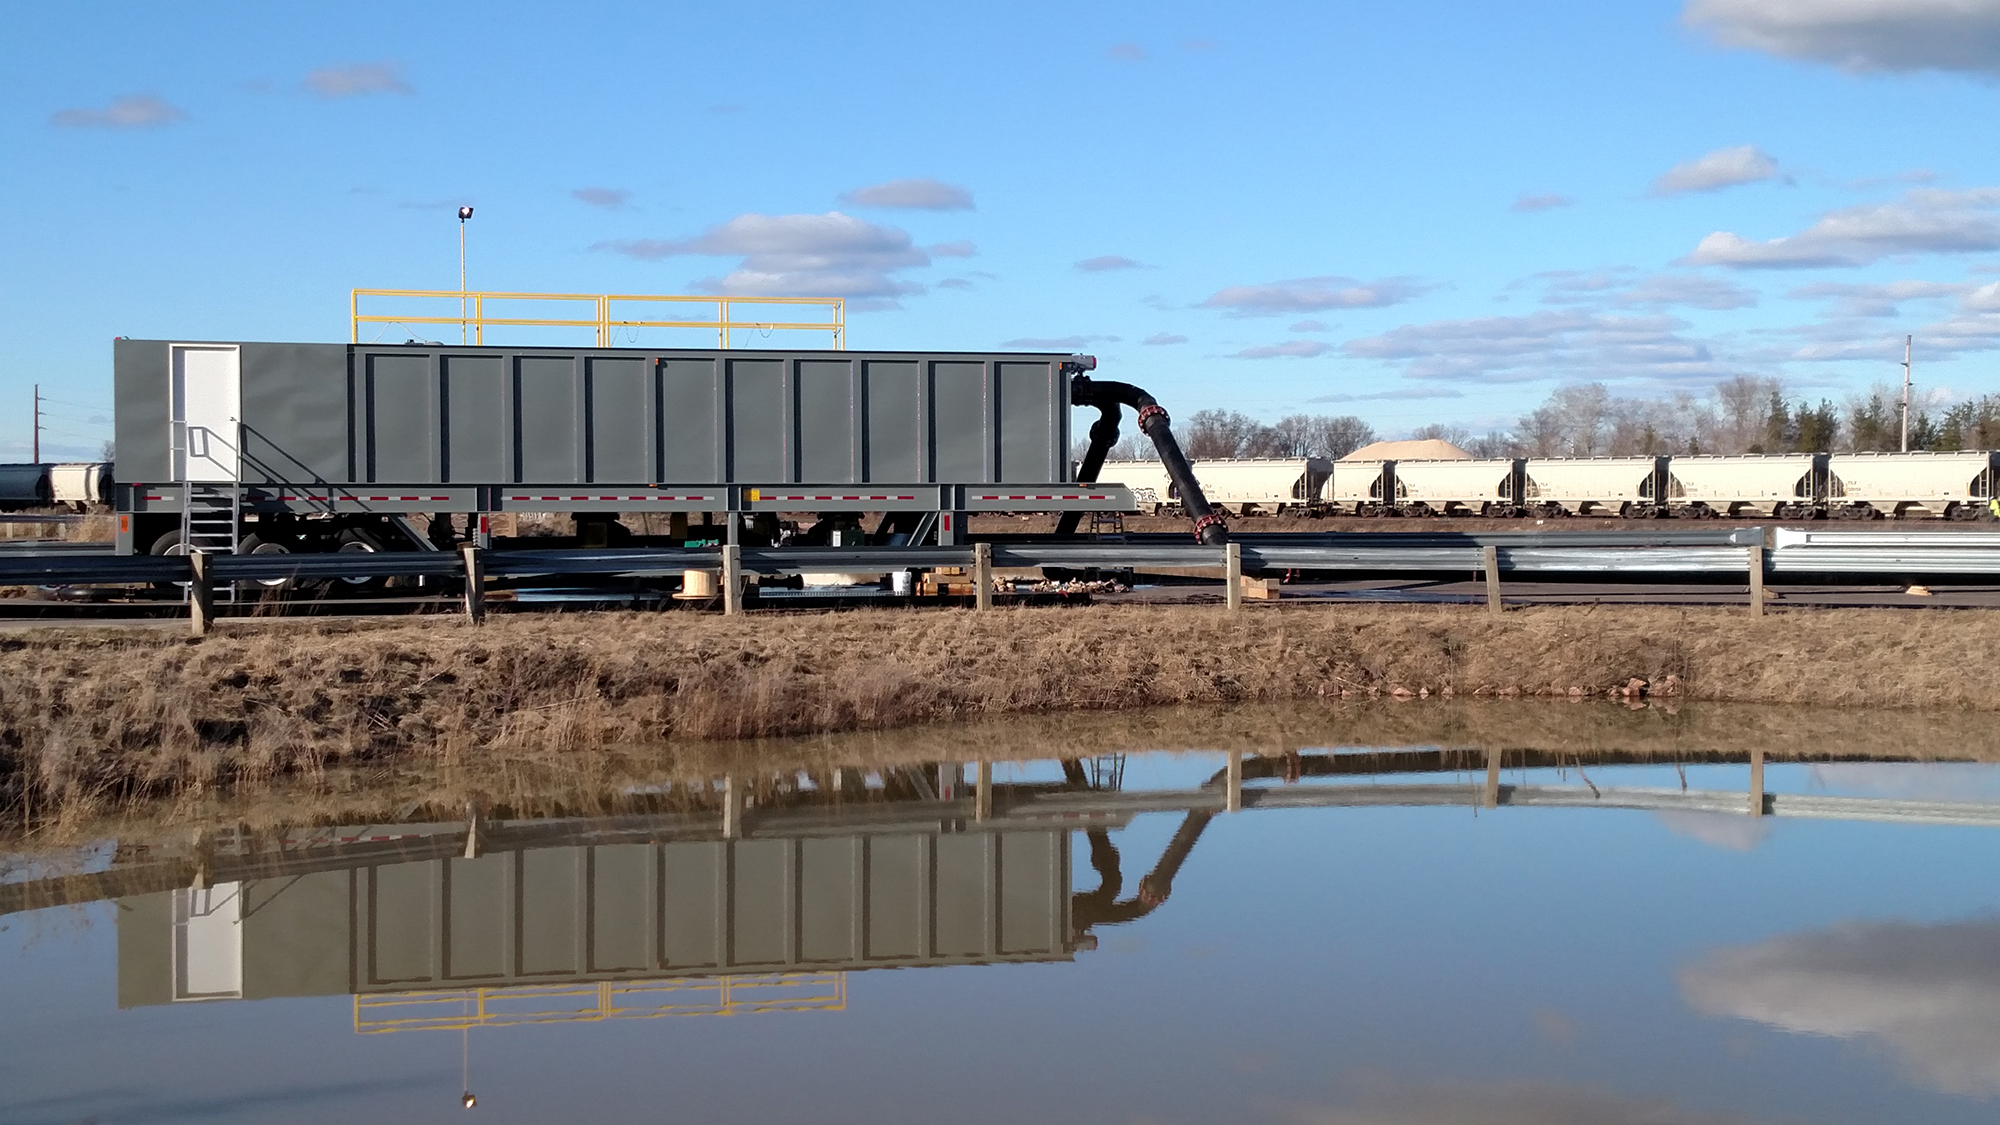 A grey rectangular portable water clarifier cribbed up next to a stormwater holding pond with a train in the background.